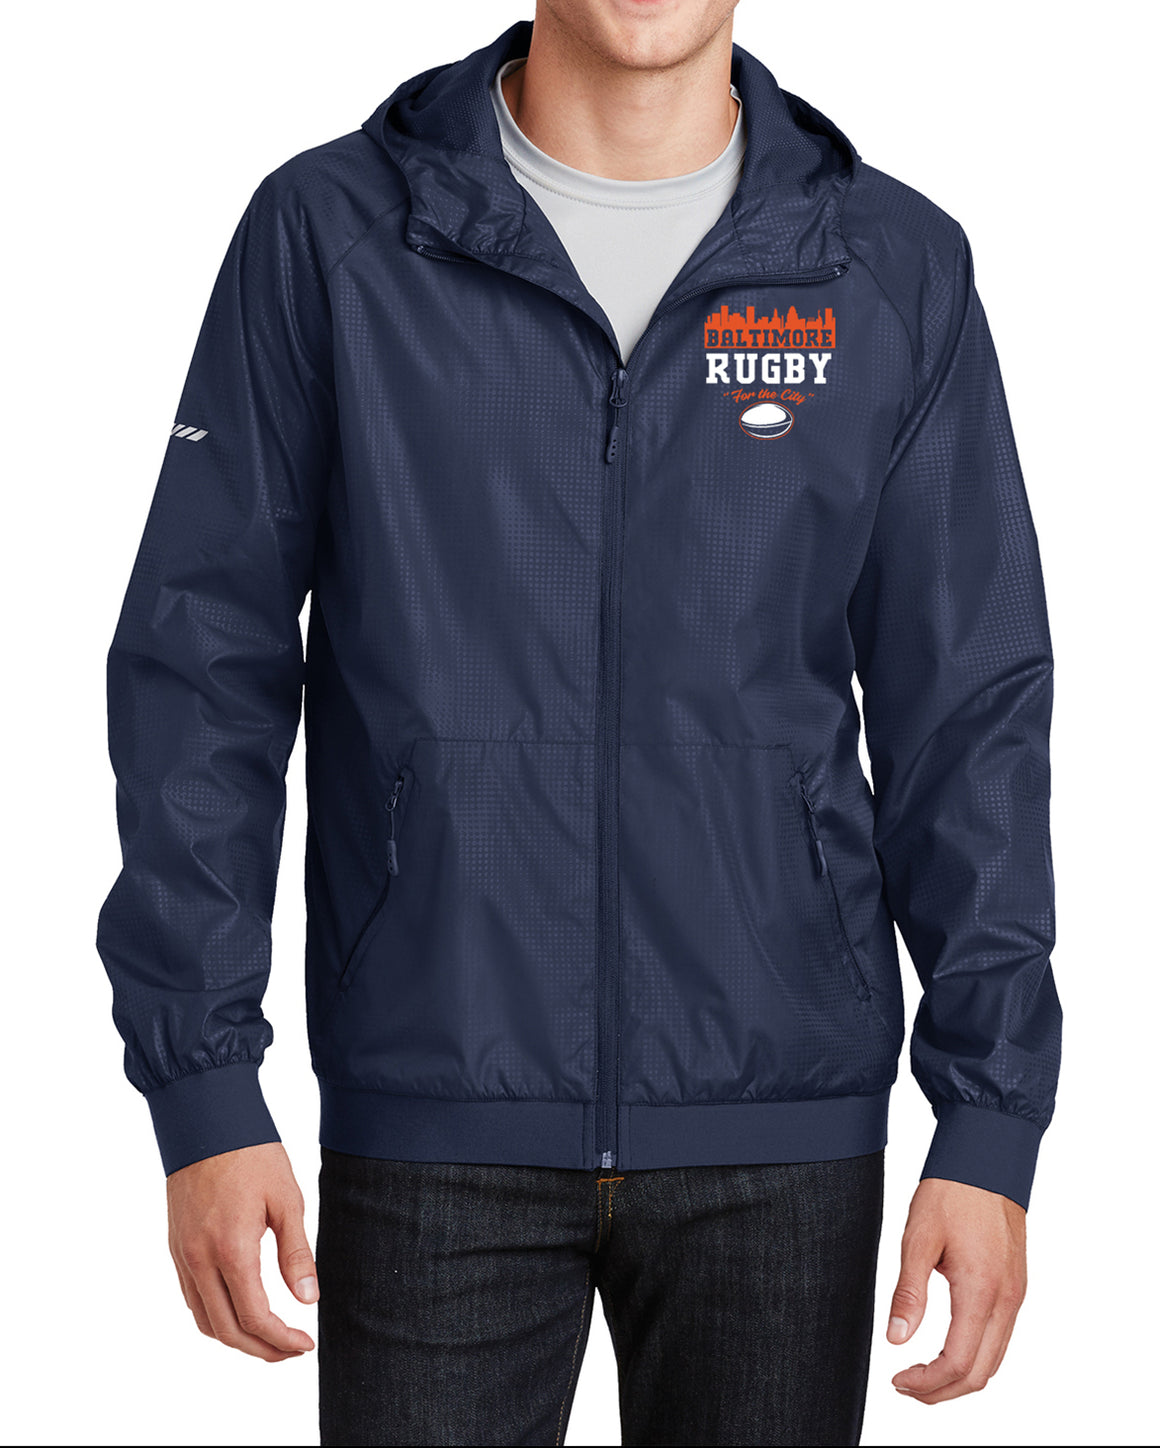 Baltimore Rugby Adult Jacket